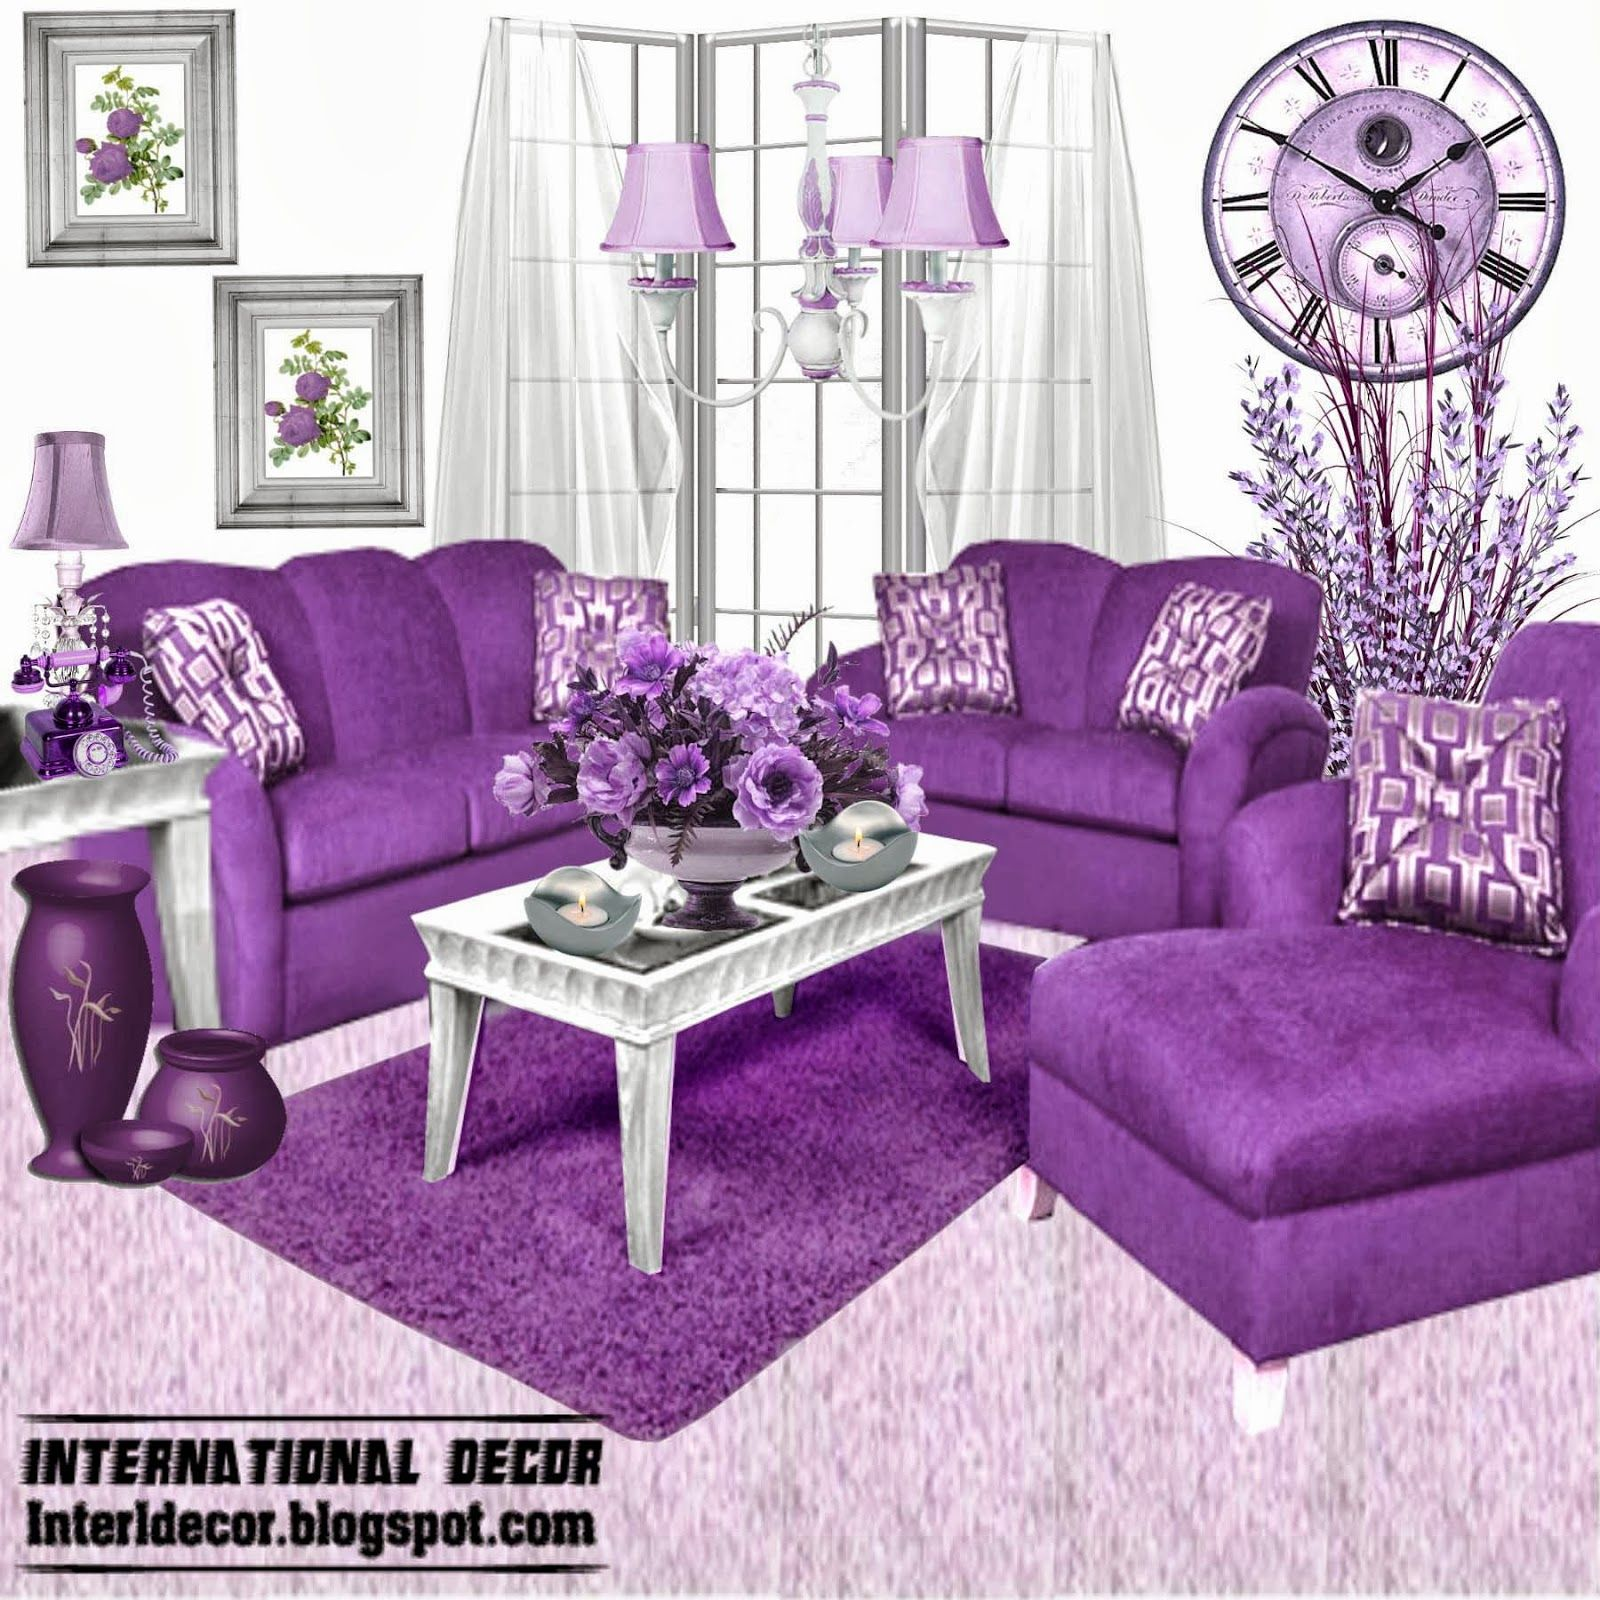 Purple Living Room good living room decor ideas purple youtube french country Good Living Room Decor Ideas Purple Youtube French Country